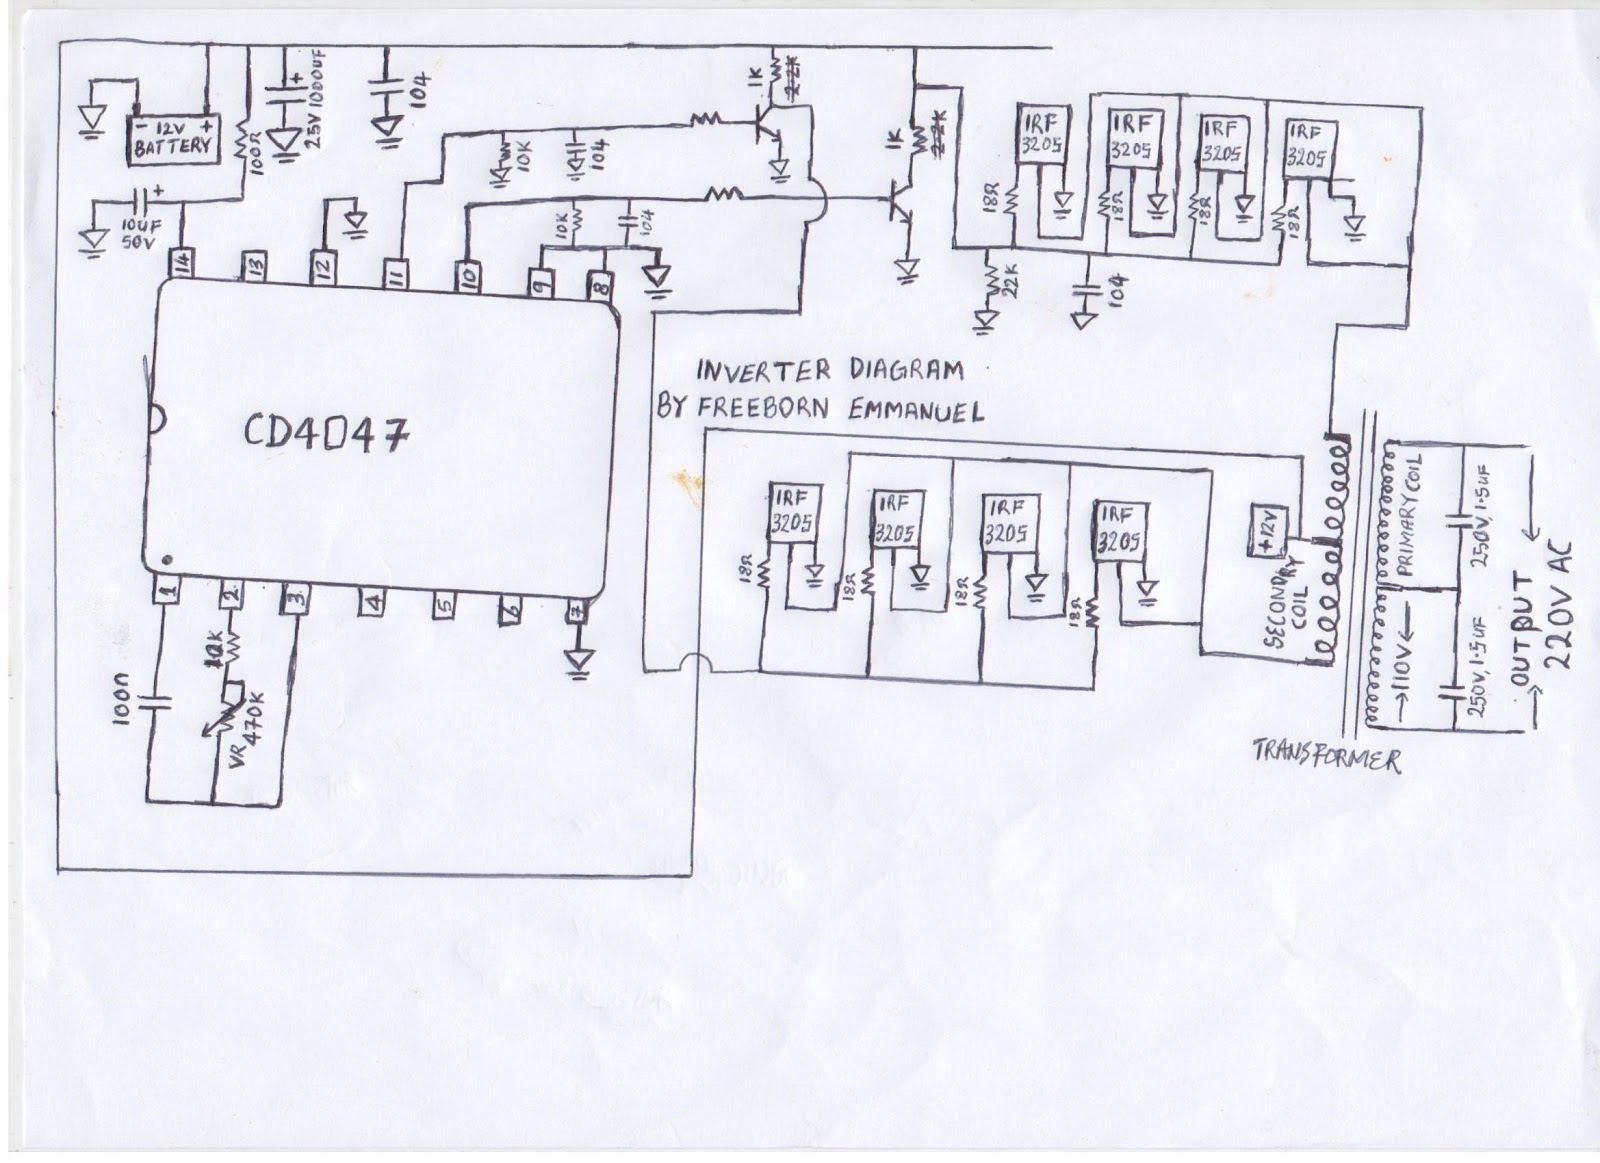 House Wiring Diagram With Inverter : How to build an inverter watts circuit diagram